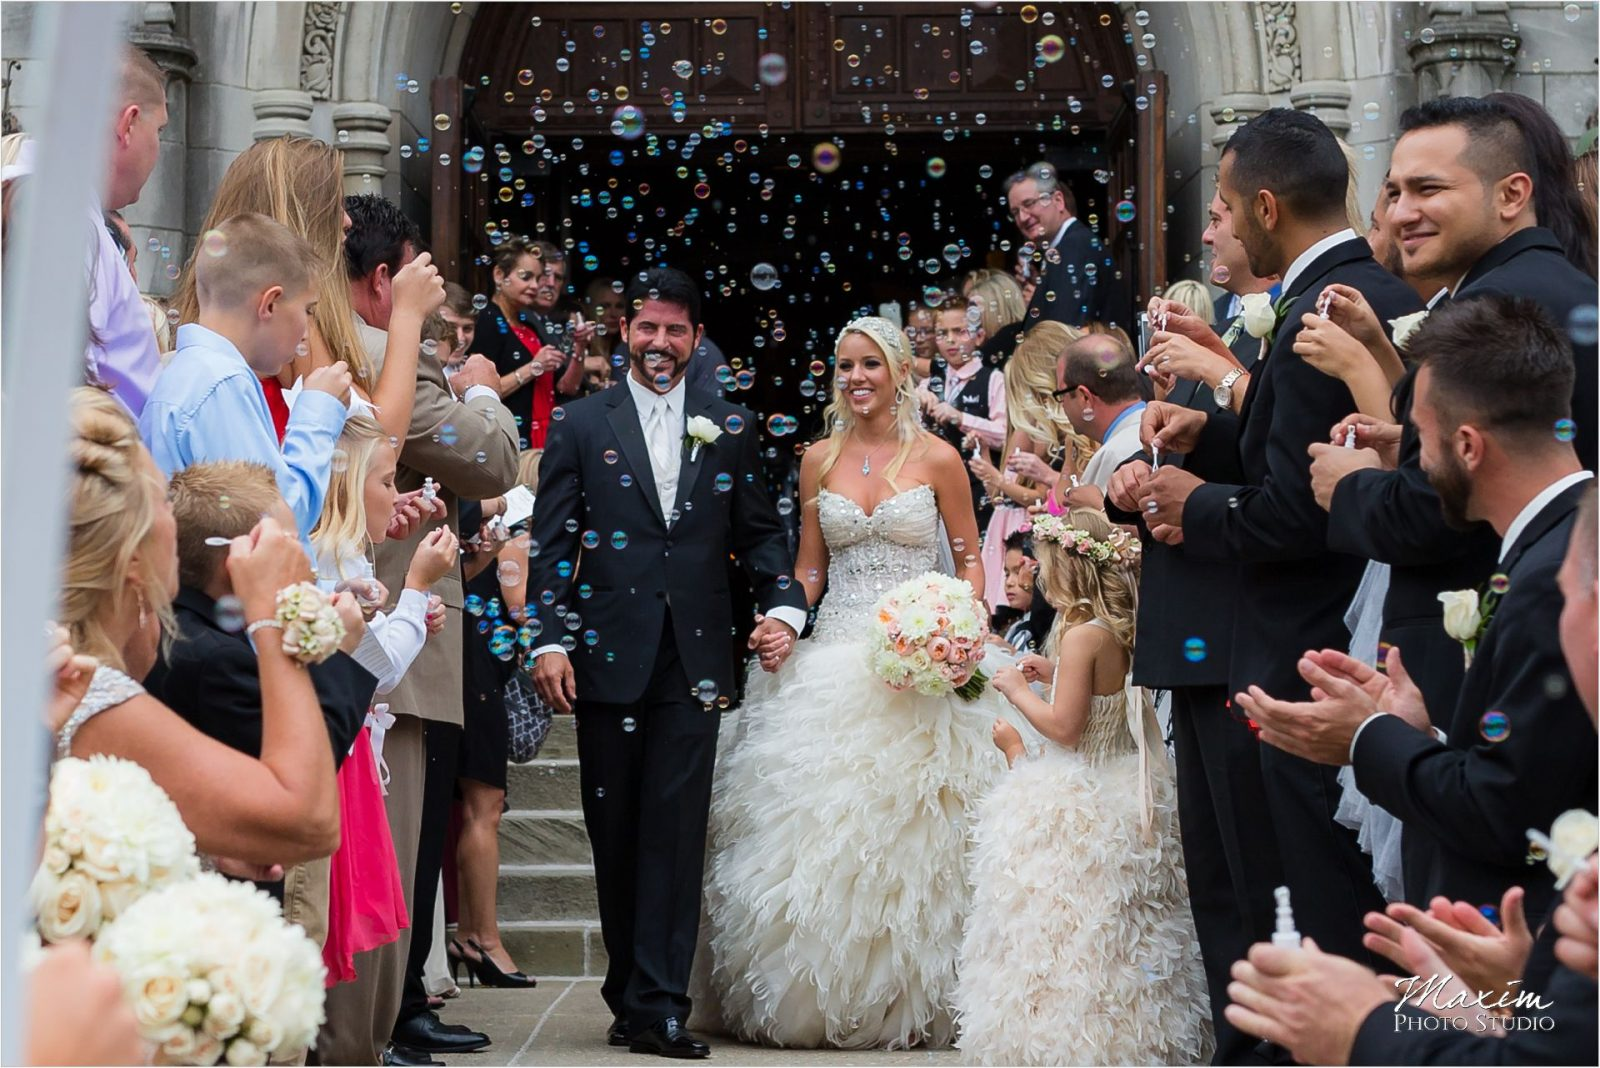 Cincinnati Wedding Photographers Hyde Park United Methodist Church Wedding bride groom bubbles